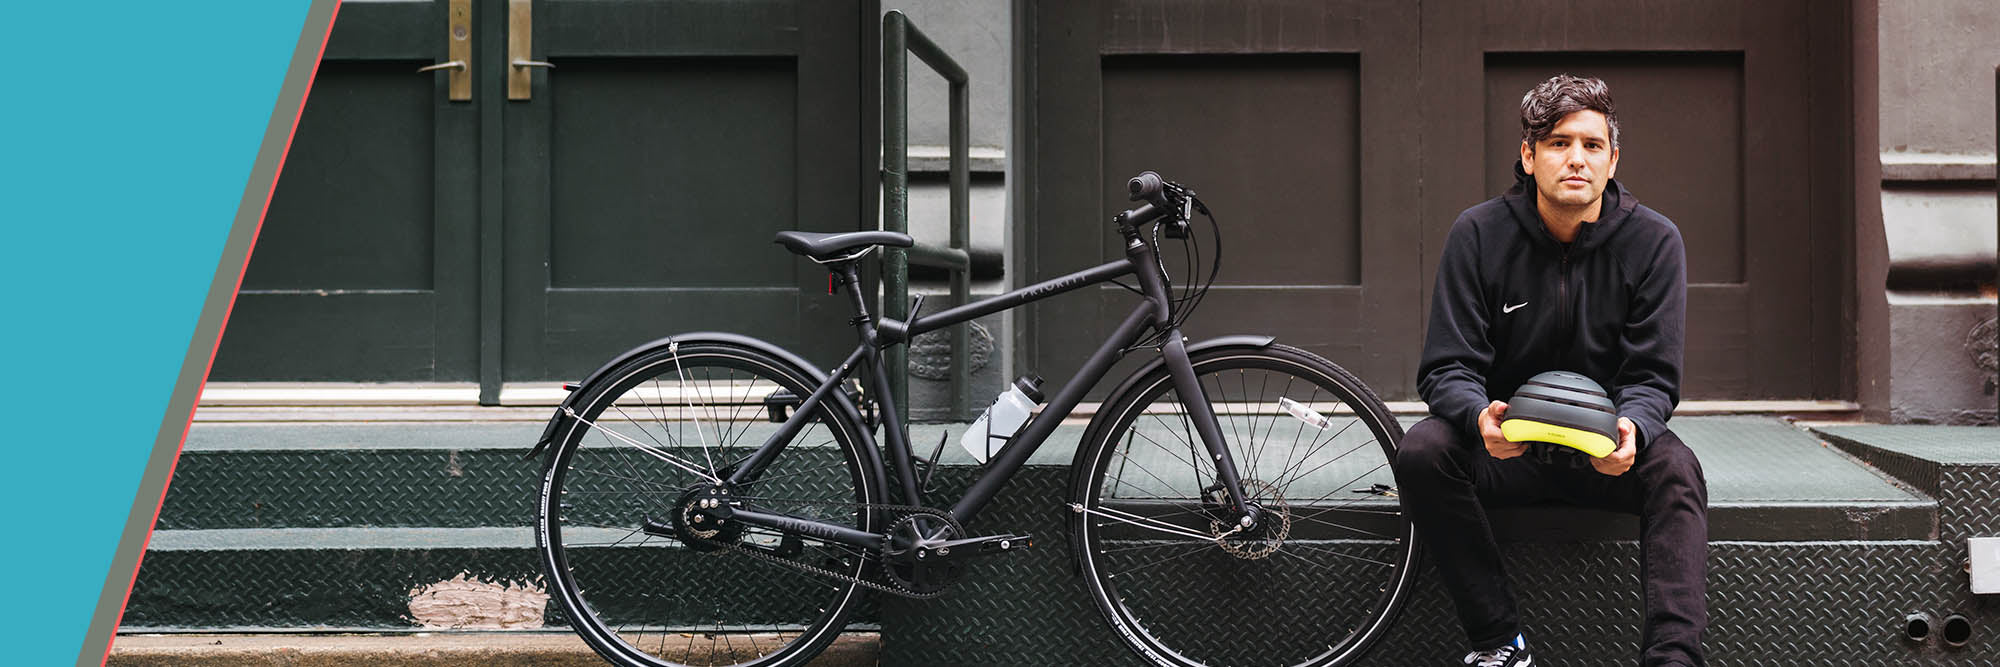 "<a href=""https://www.prioritybicycles.com/pages/specials"" target=""""> <img src=""https://cdn.shopify.com/s/files/1/1245/1481/files/march_2020.png?v=1584380304""> </a>"